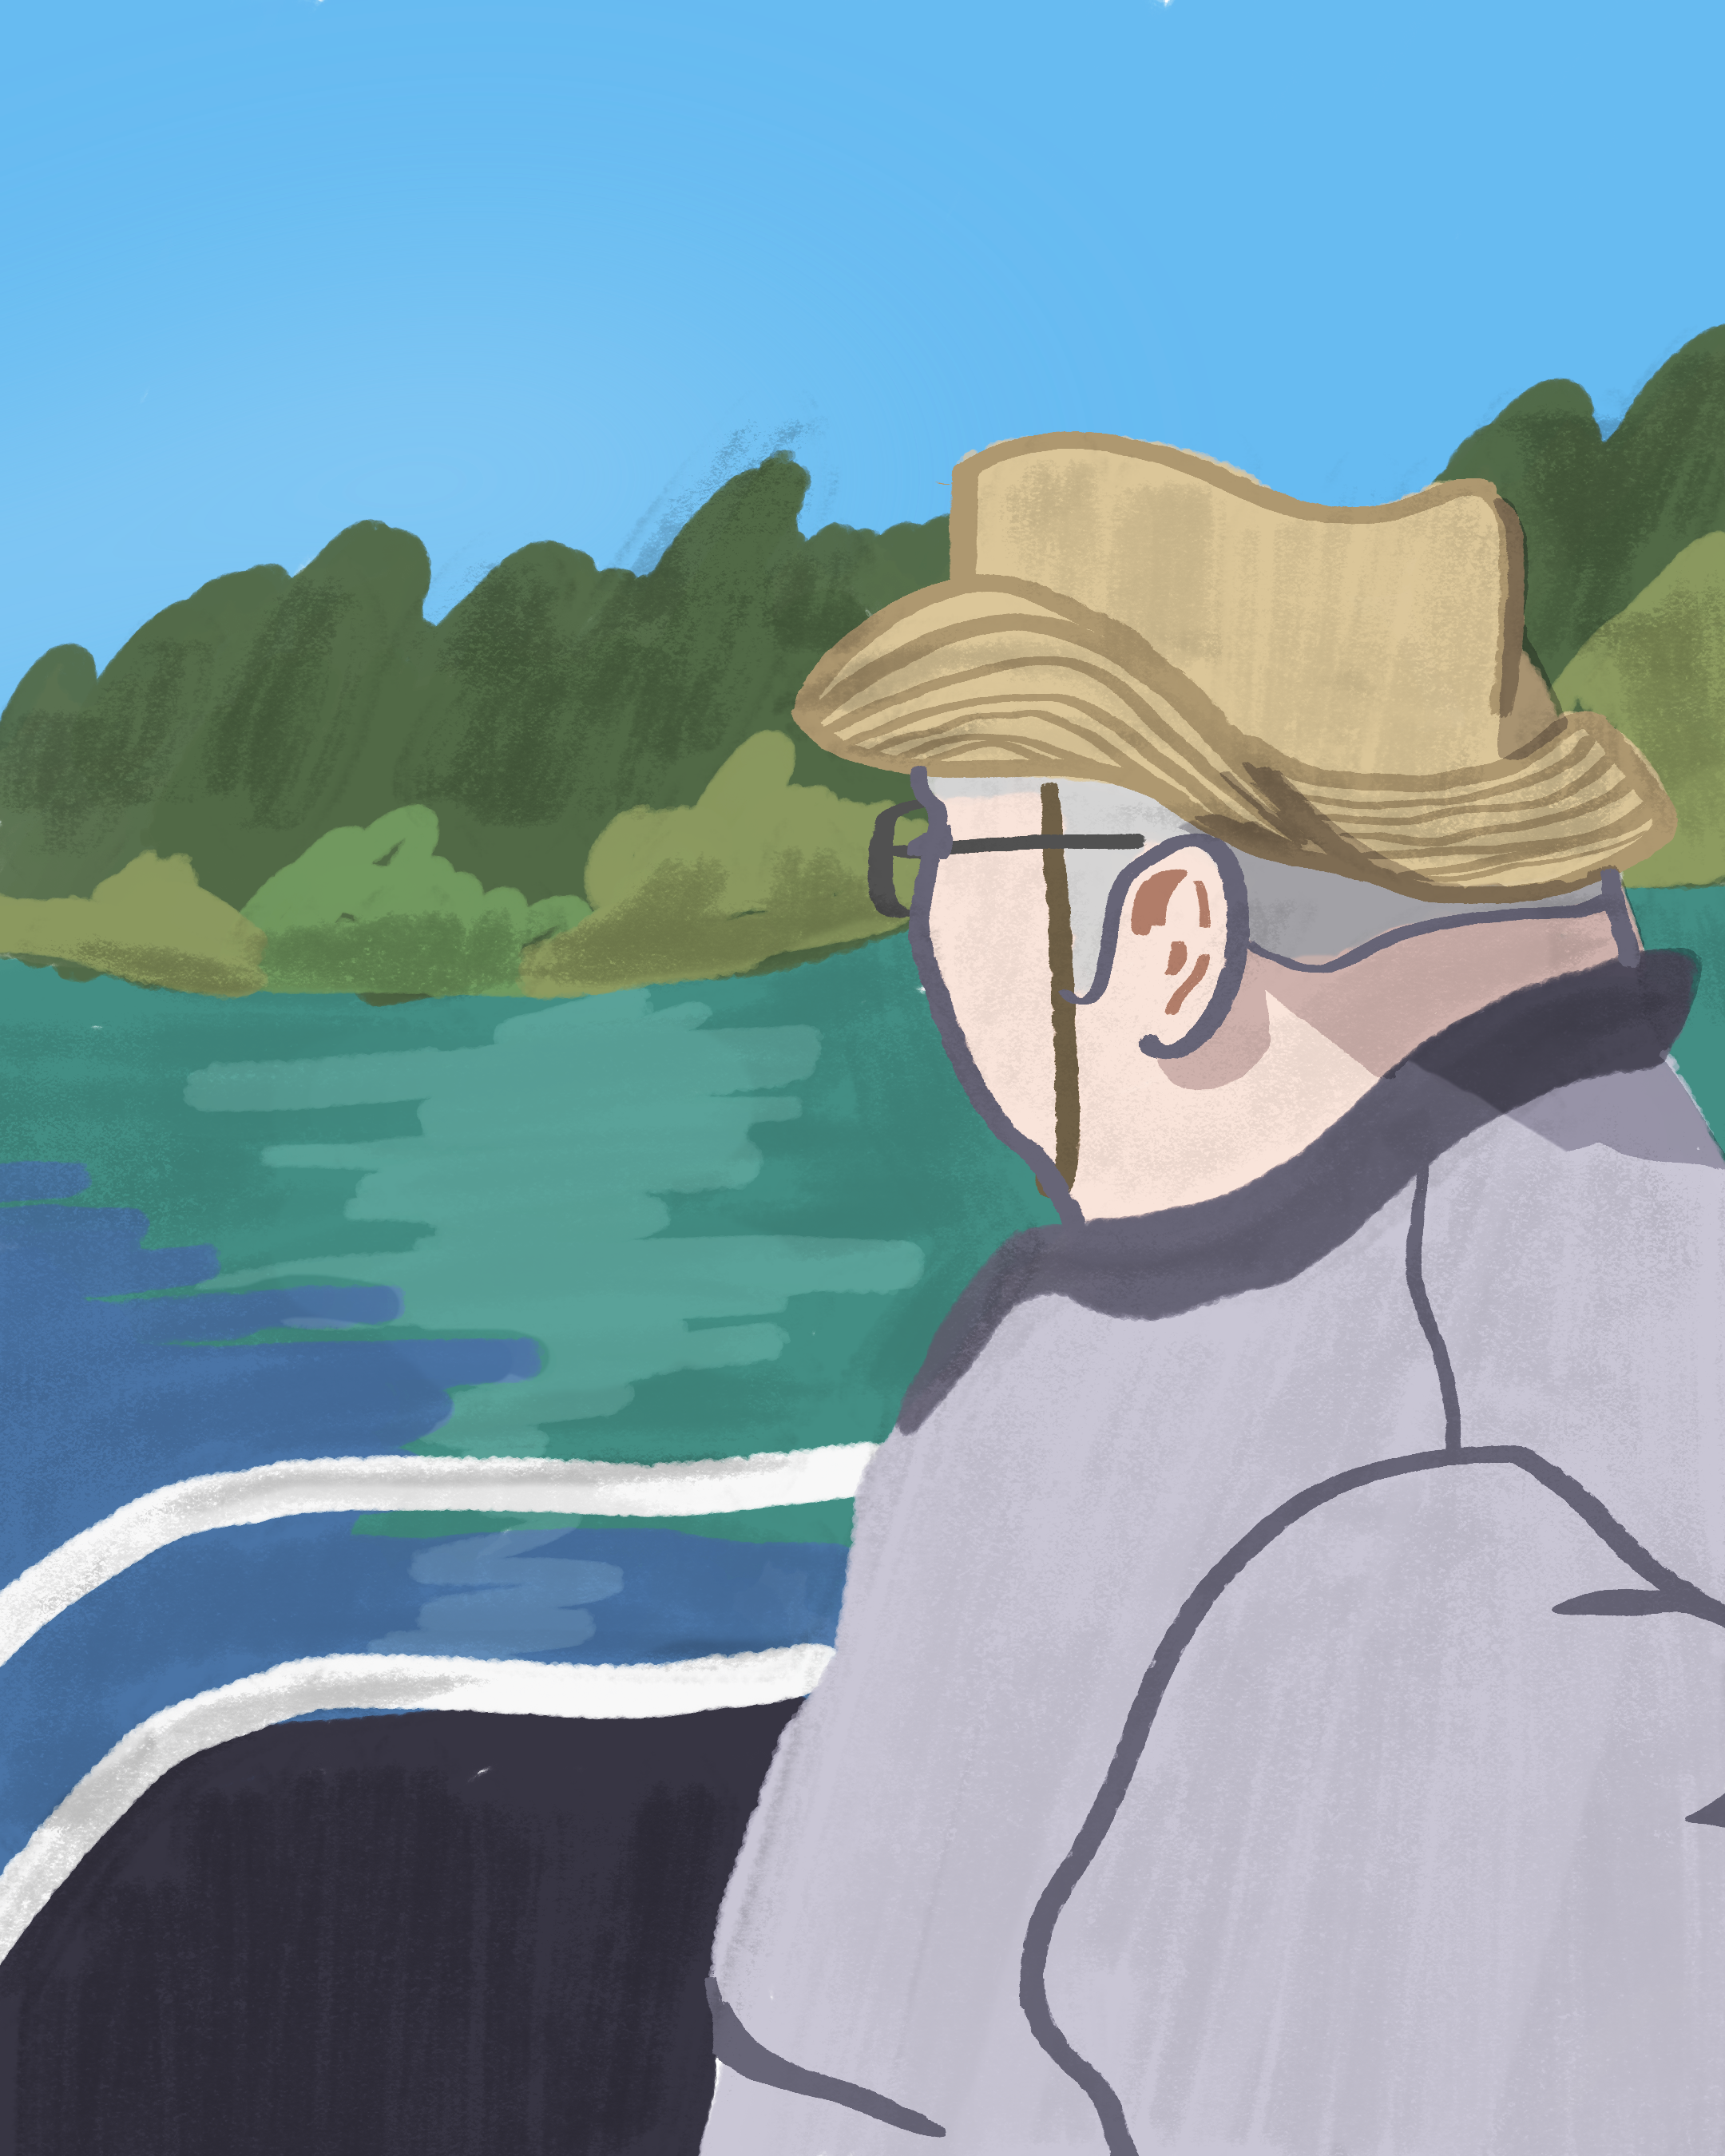 97- Roger on the Boat.png